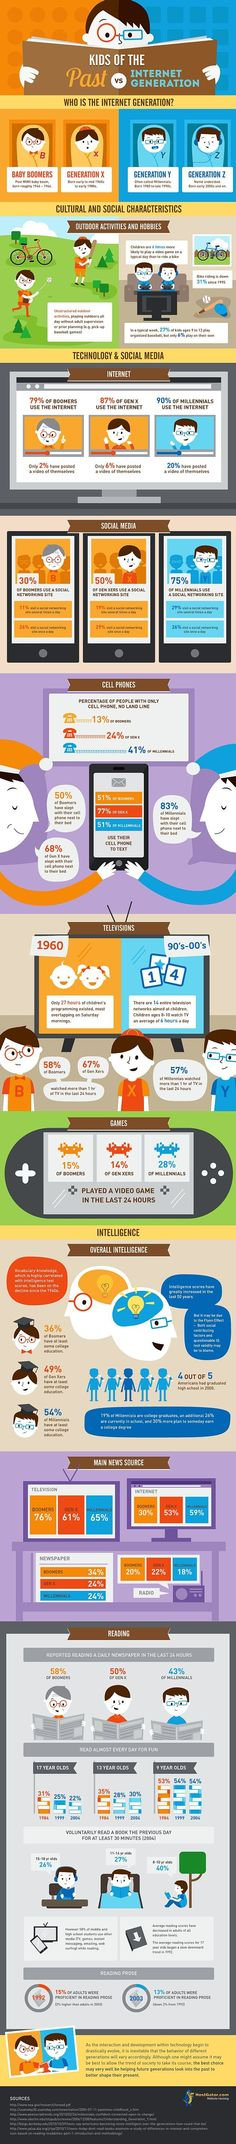 Infographic: The Differing Online Habits of Millennials and Baby Boomers | Yahoo! Advertising Solutions - Yahoo!